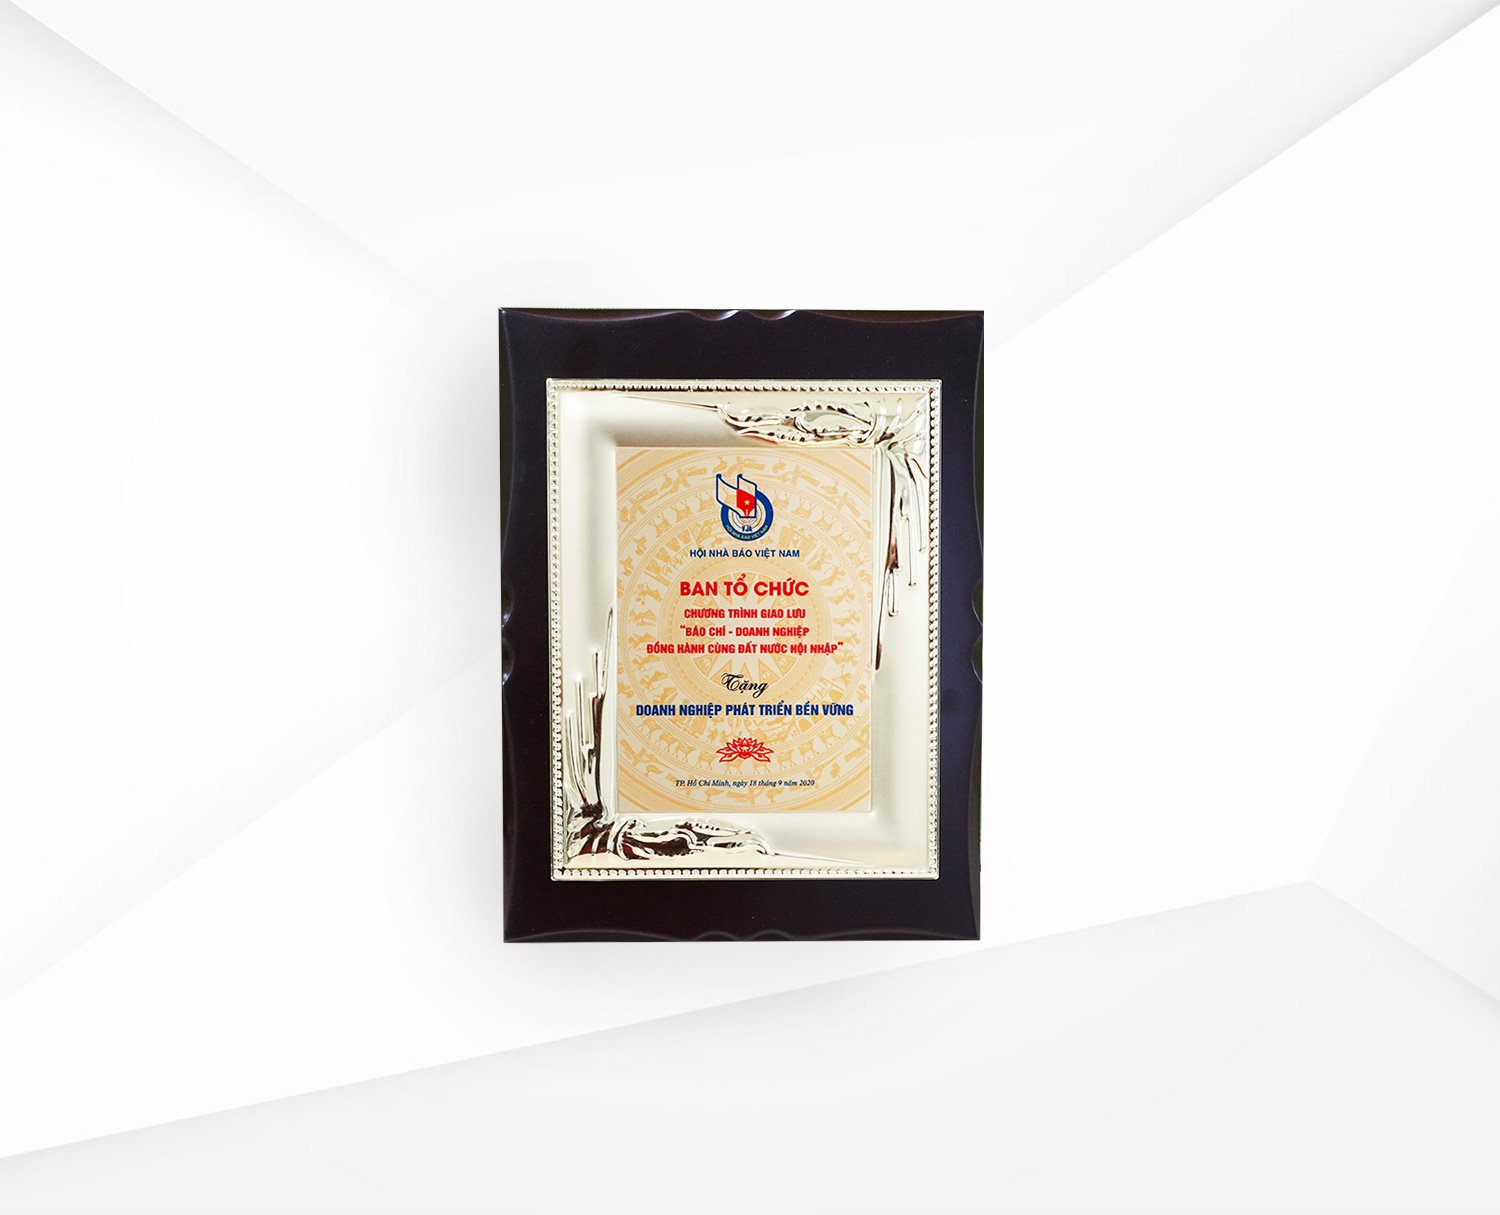 Recognition of Sustainable Business by Vietnam Journalists Association